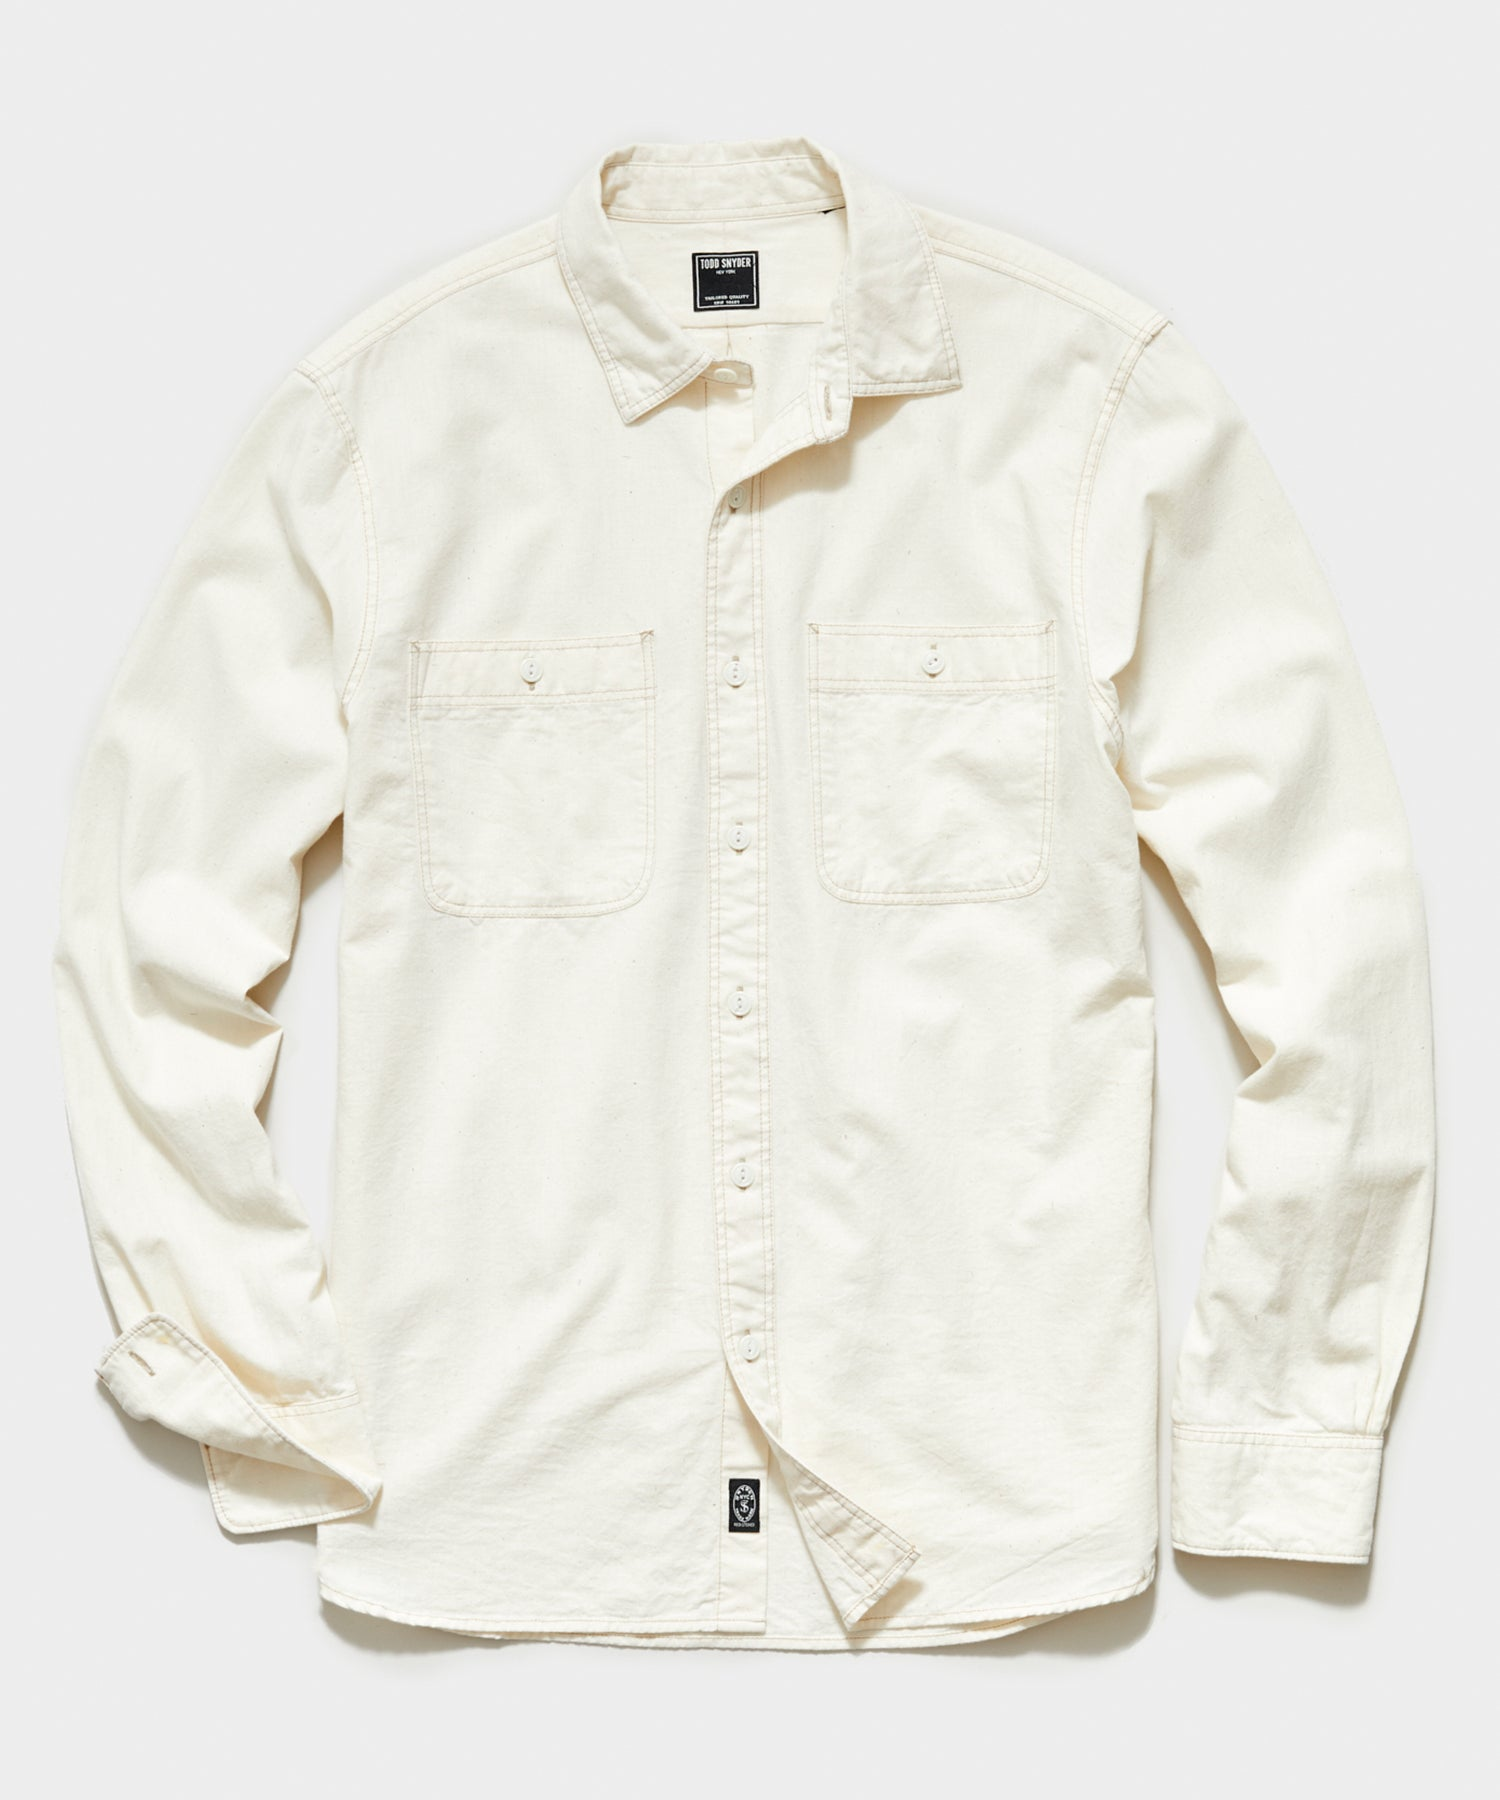 Japanese Off White Chambray Work Shirt